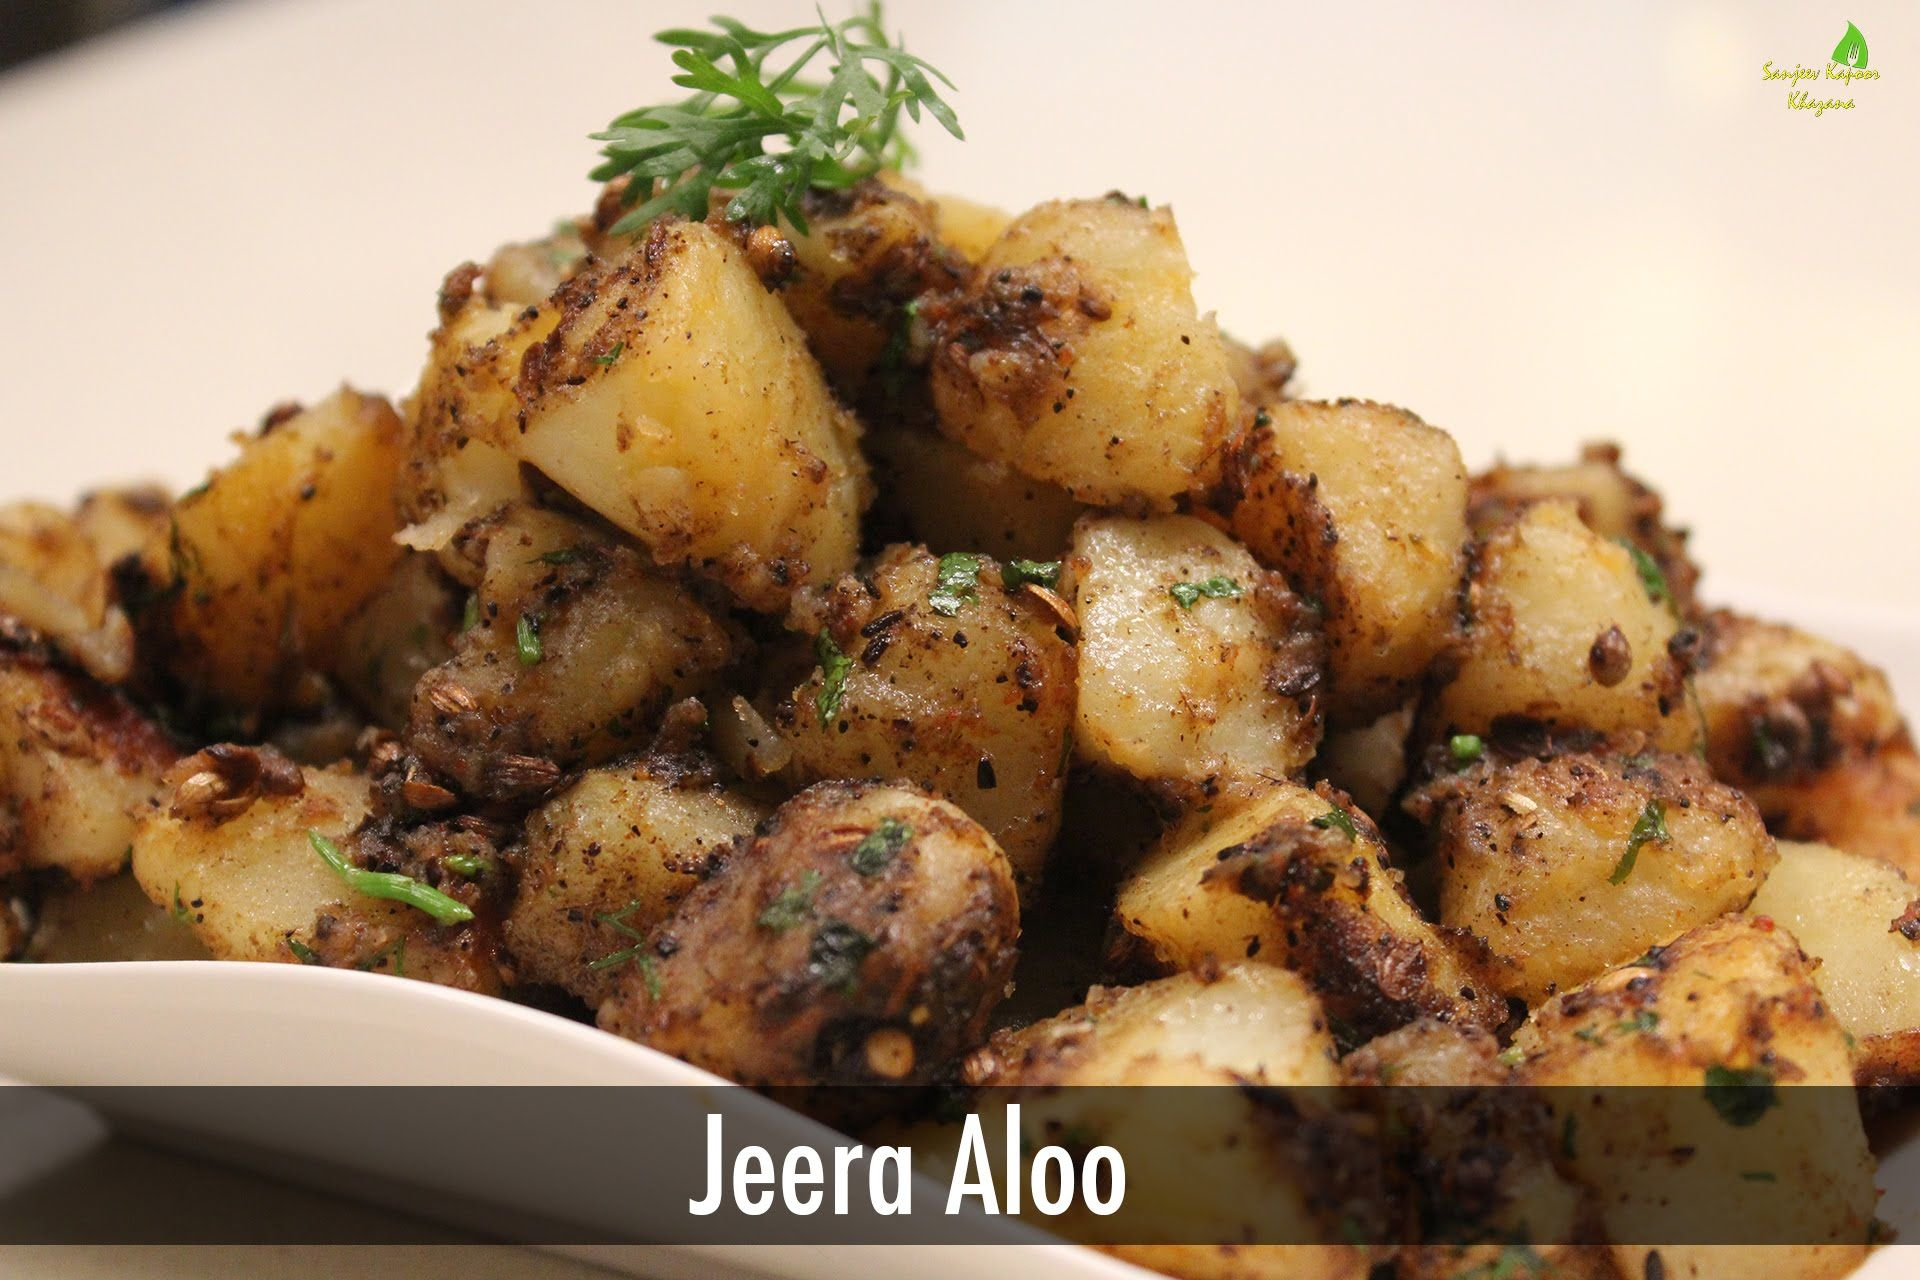 Jeera aloo vegetarian indian recipes sanjeev kapoor khazana jeera aloo vegetarian indian recipes sanjeev kapoor khazana forumfinder Choice Image